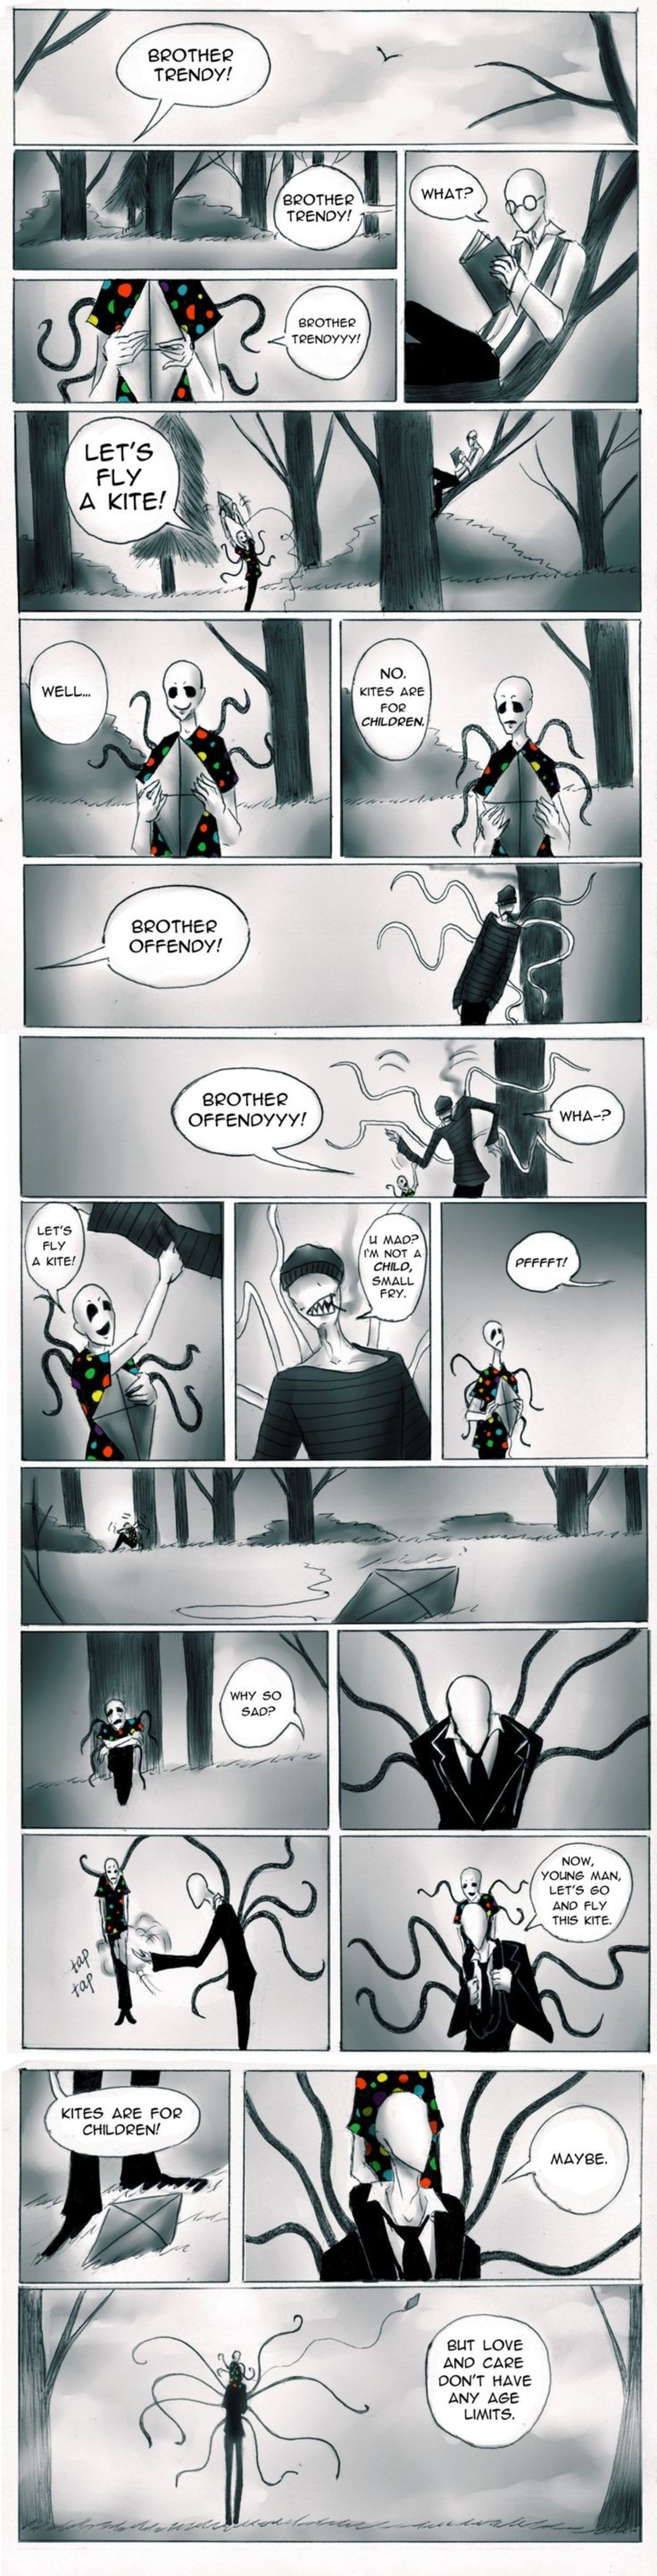 Slenderman Feels. Who says horrifying, eldritch entities can't be wholesome?.. is it implying pedophilia?